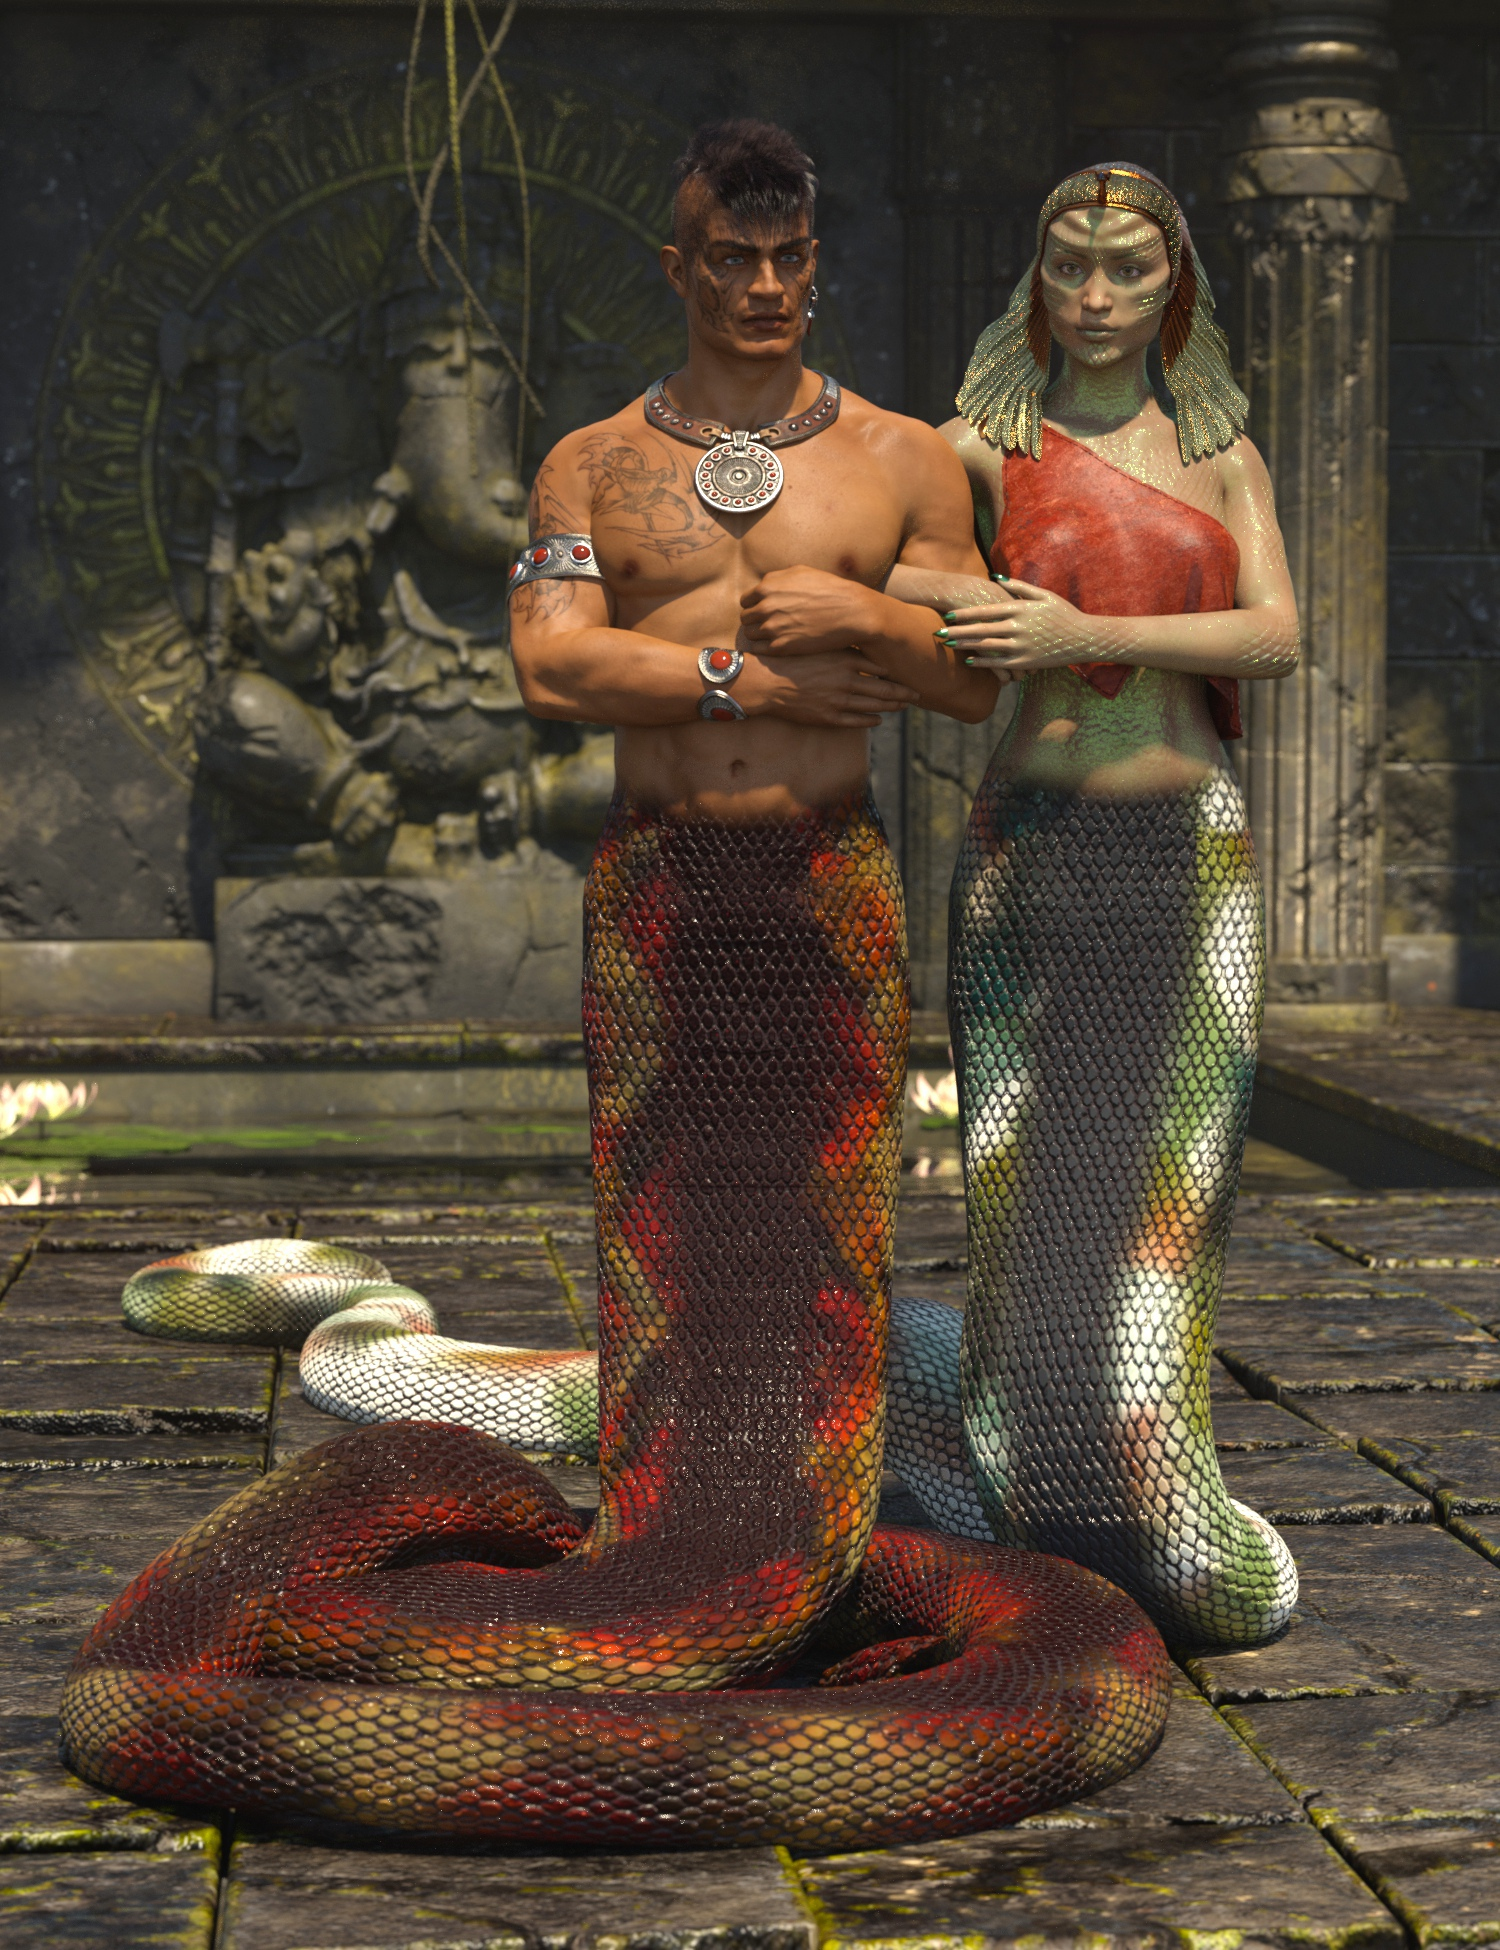 Lamia Mania - Textures for Lamia Tail and Clothes by: 3D-GHDesignSade, 3D Models by Daz 3D